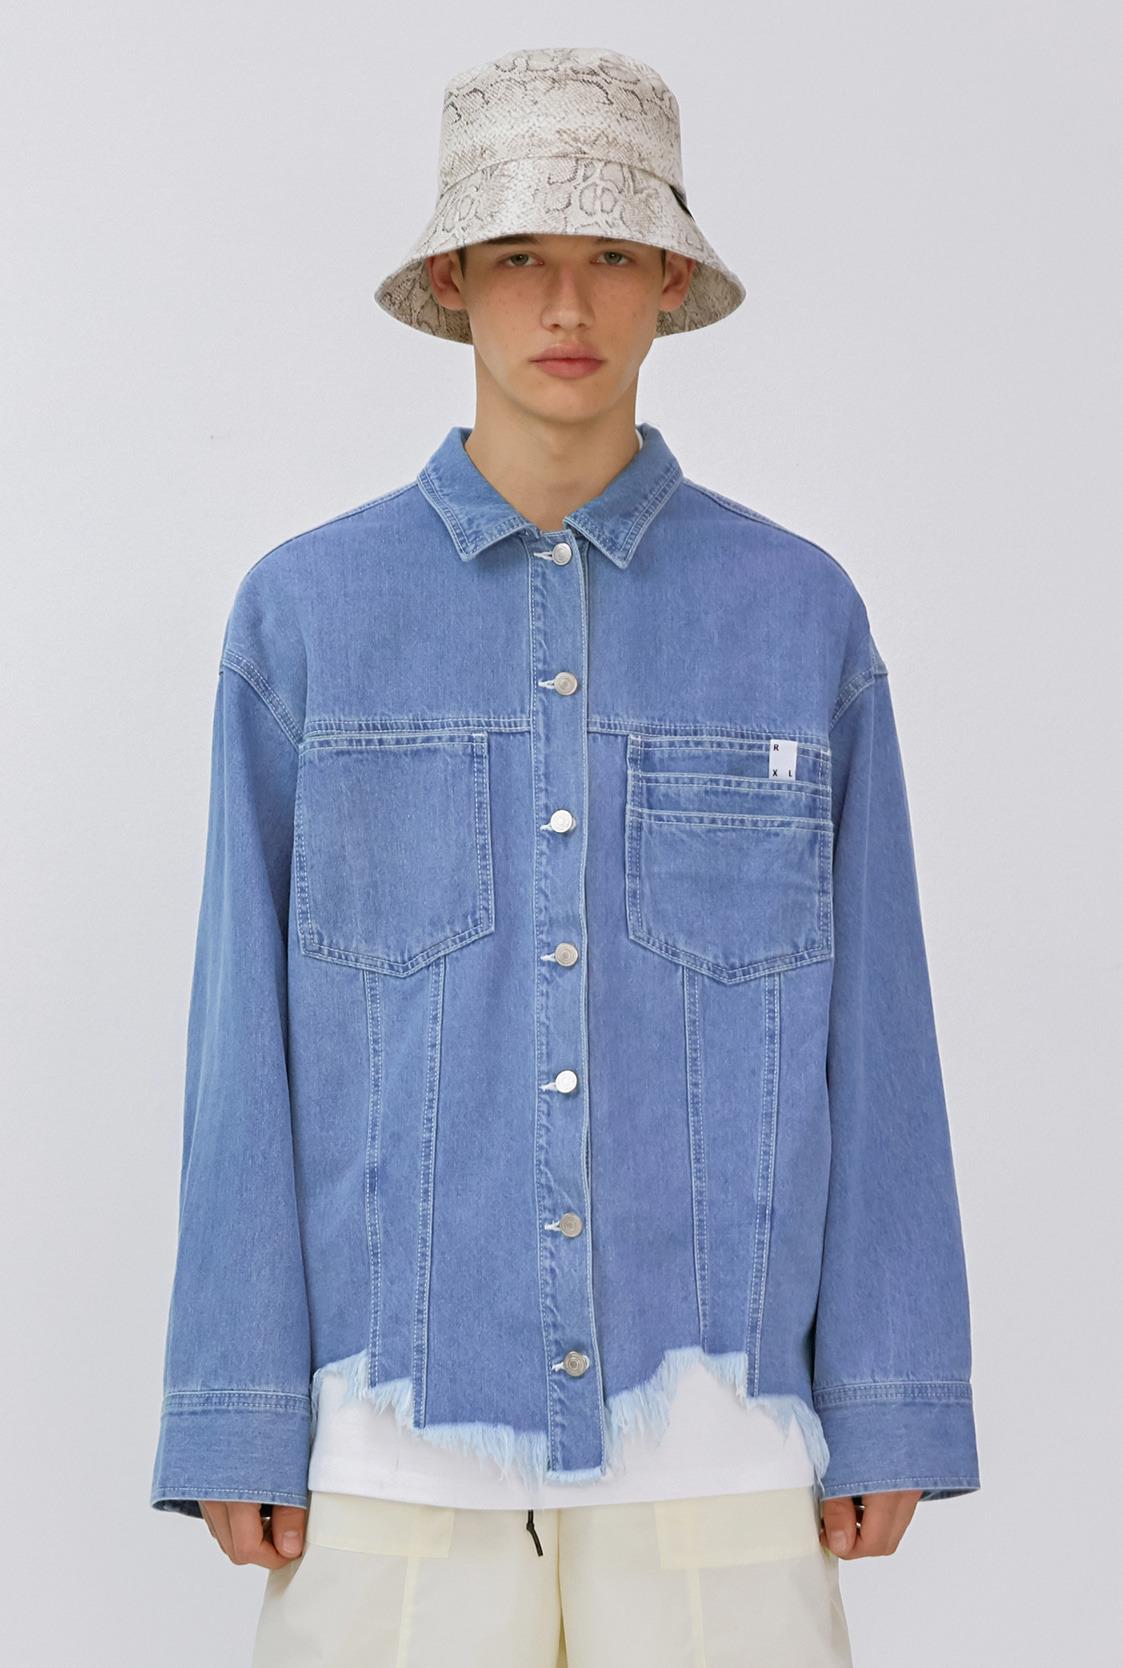 M)R DAMAGE HEMLINE DENIM JACKET